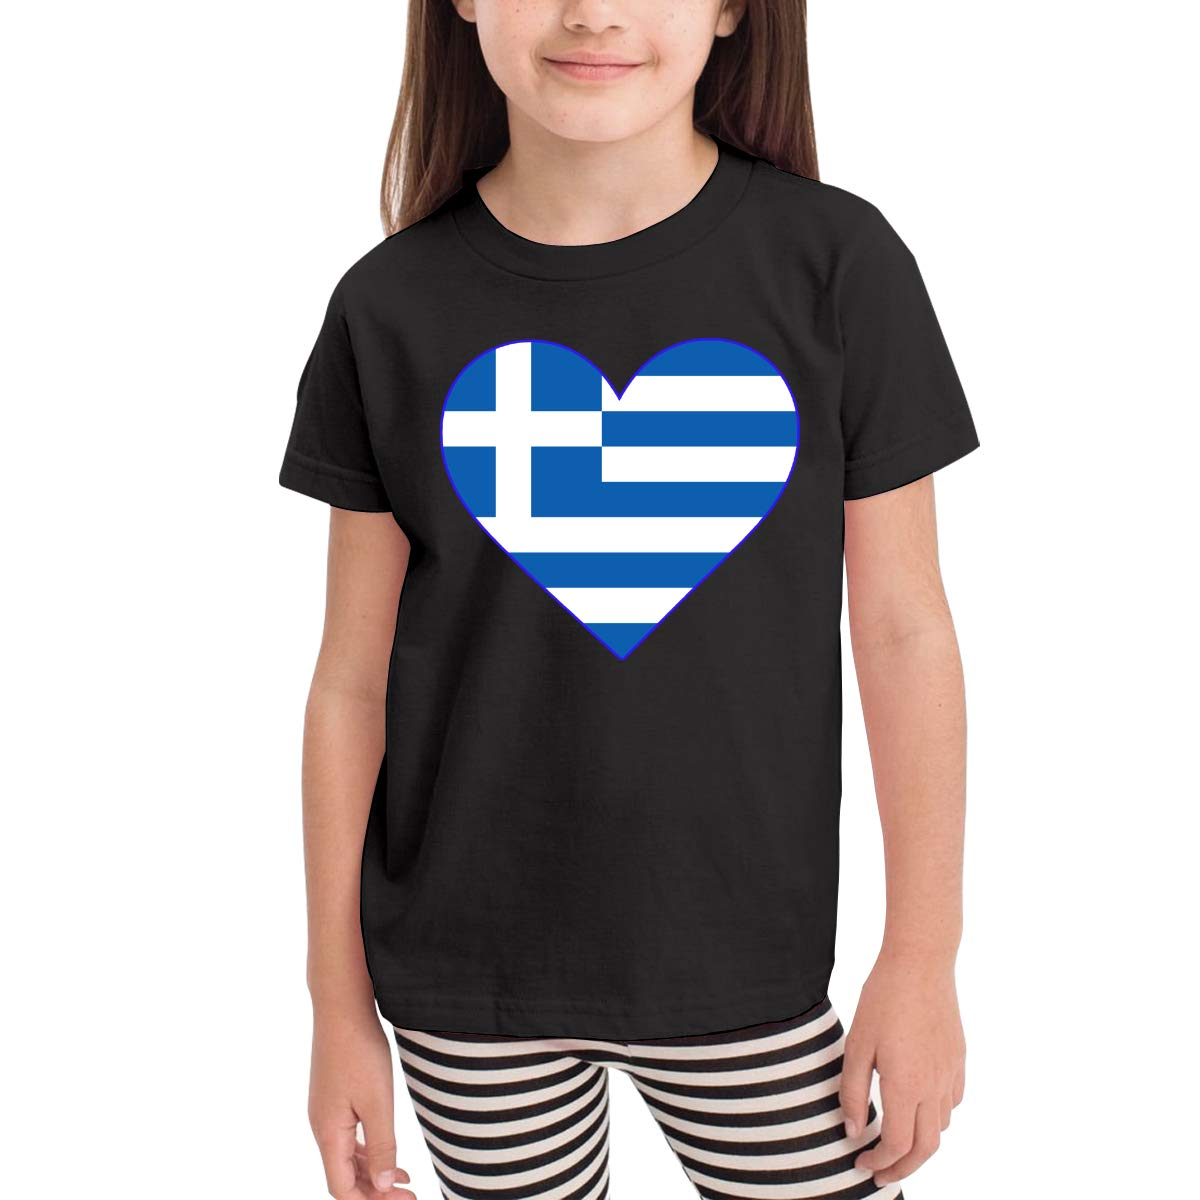 Childrens Flag of Greece Soft Short Sleeve Tee Tops Size 2-6